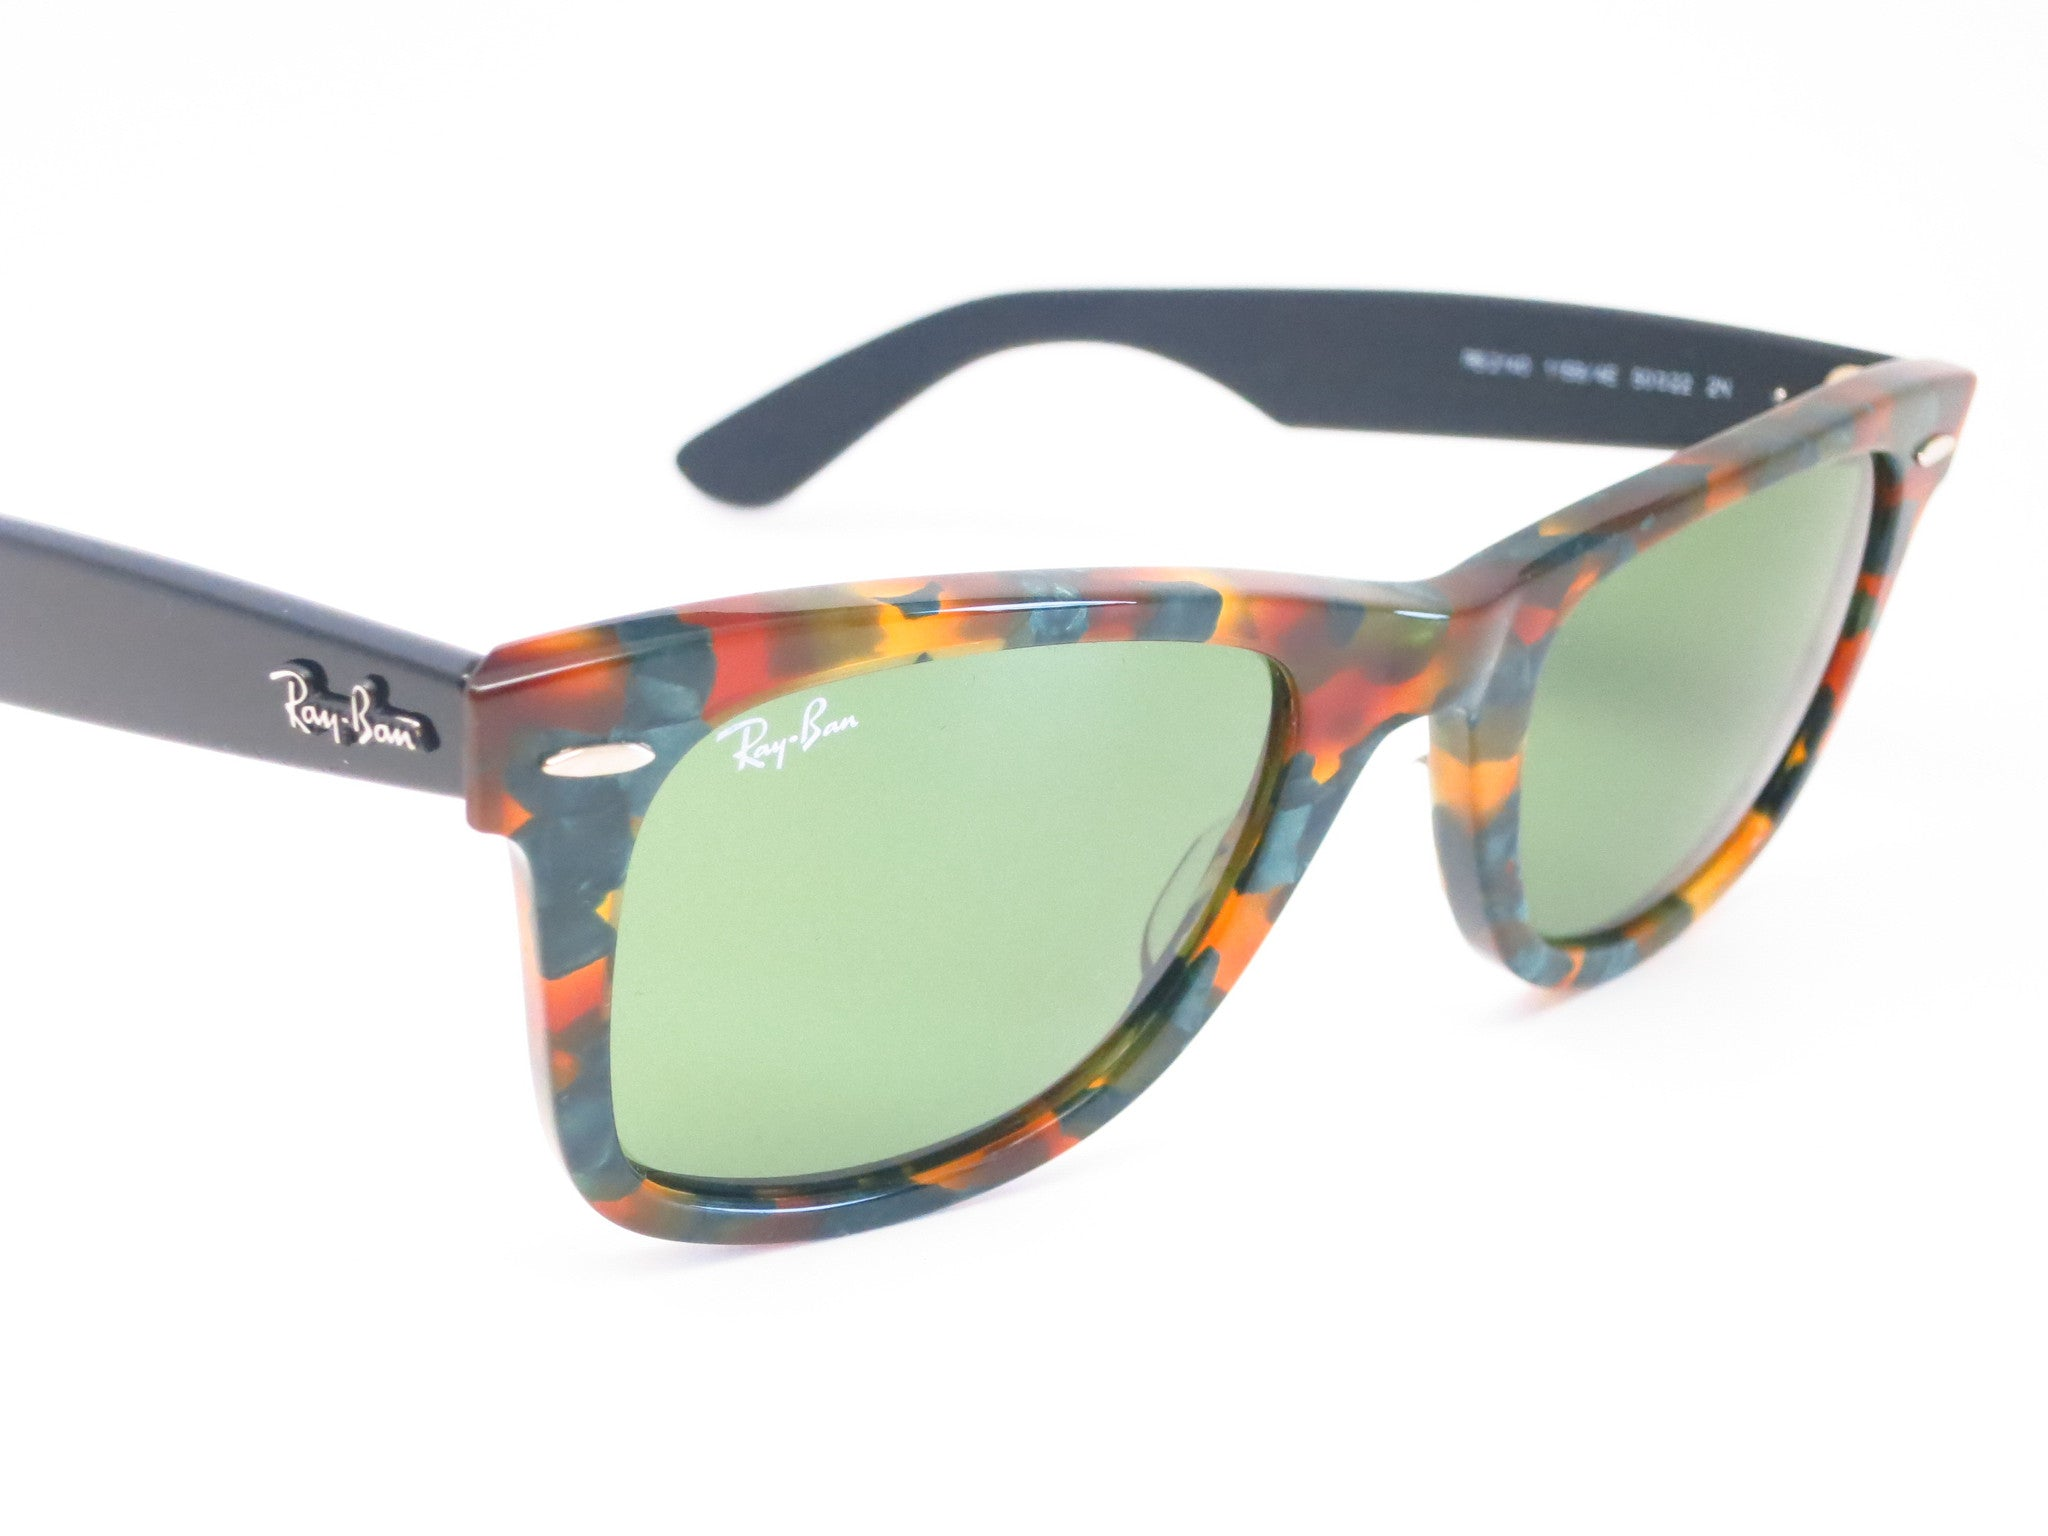 ray ban havana green eyeglasses  ray ban rb 2140 original wayfarer 1159/4e spotted green havana sunglasses eye